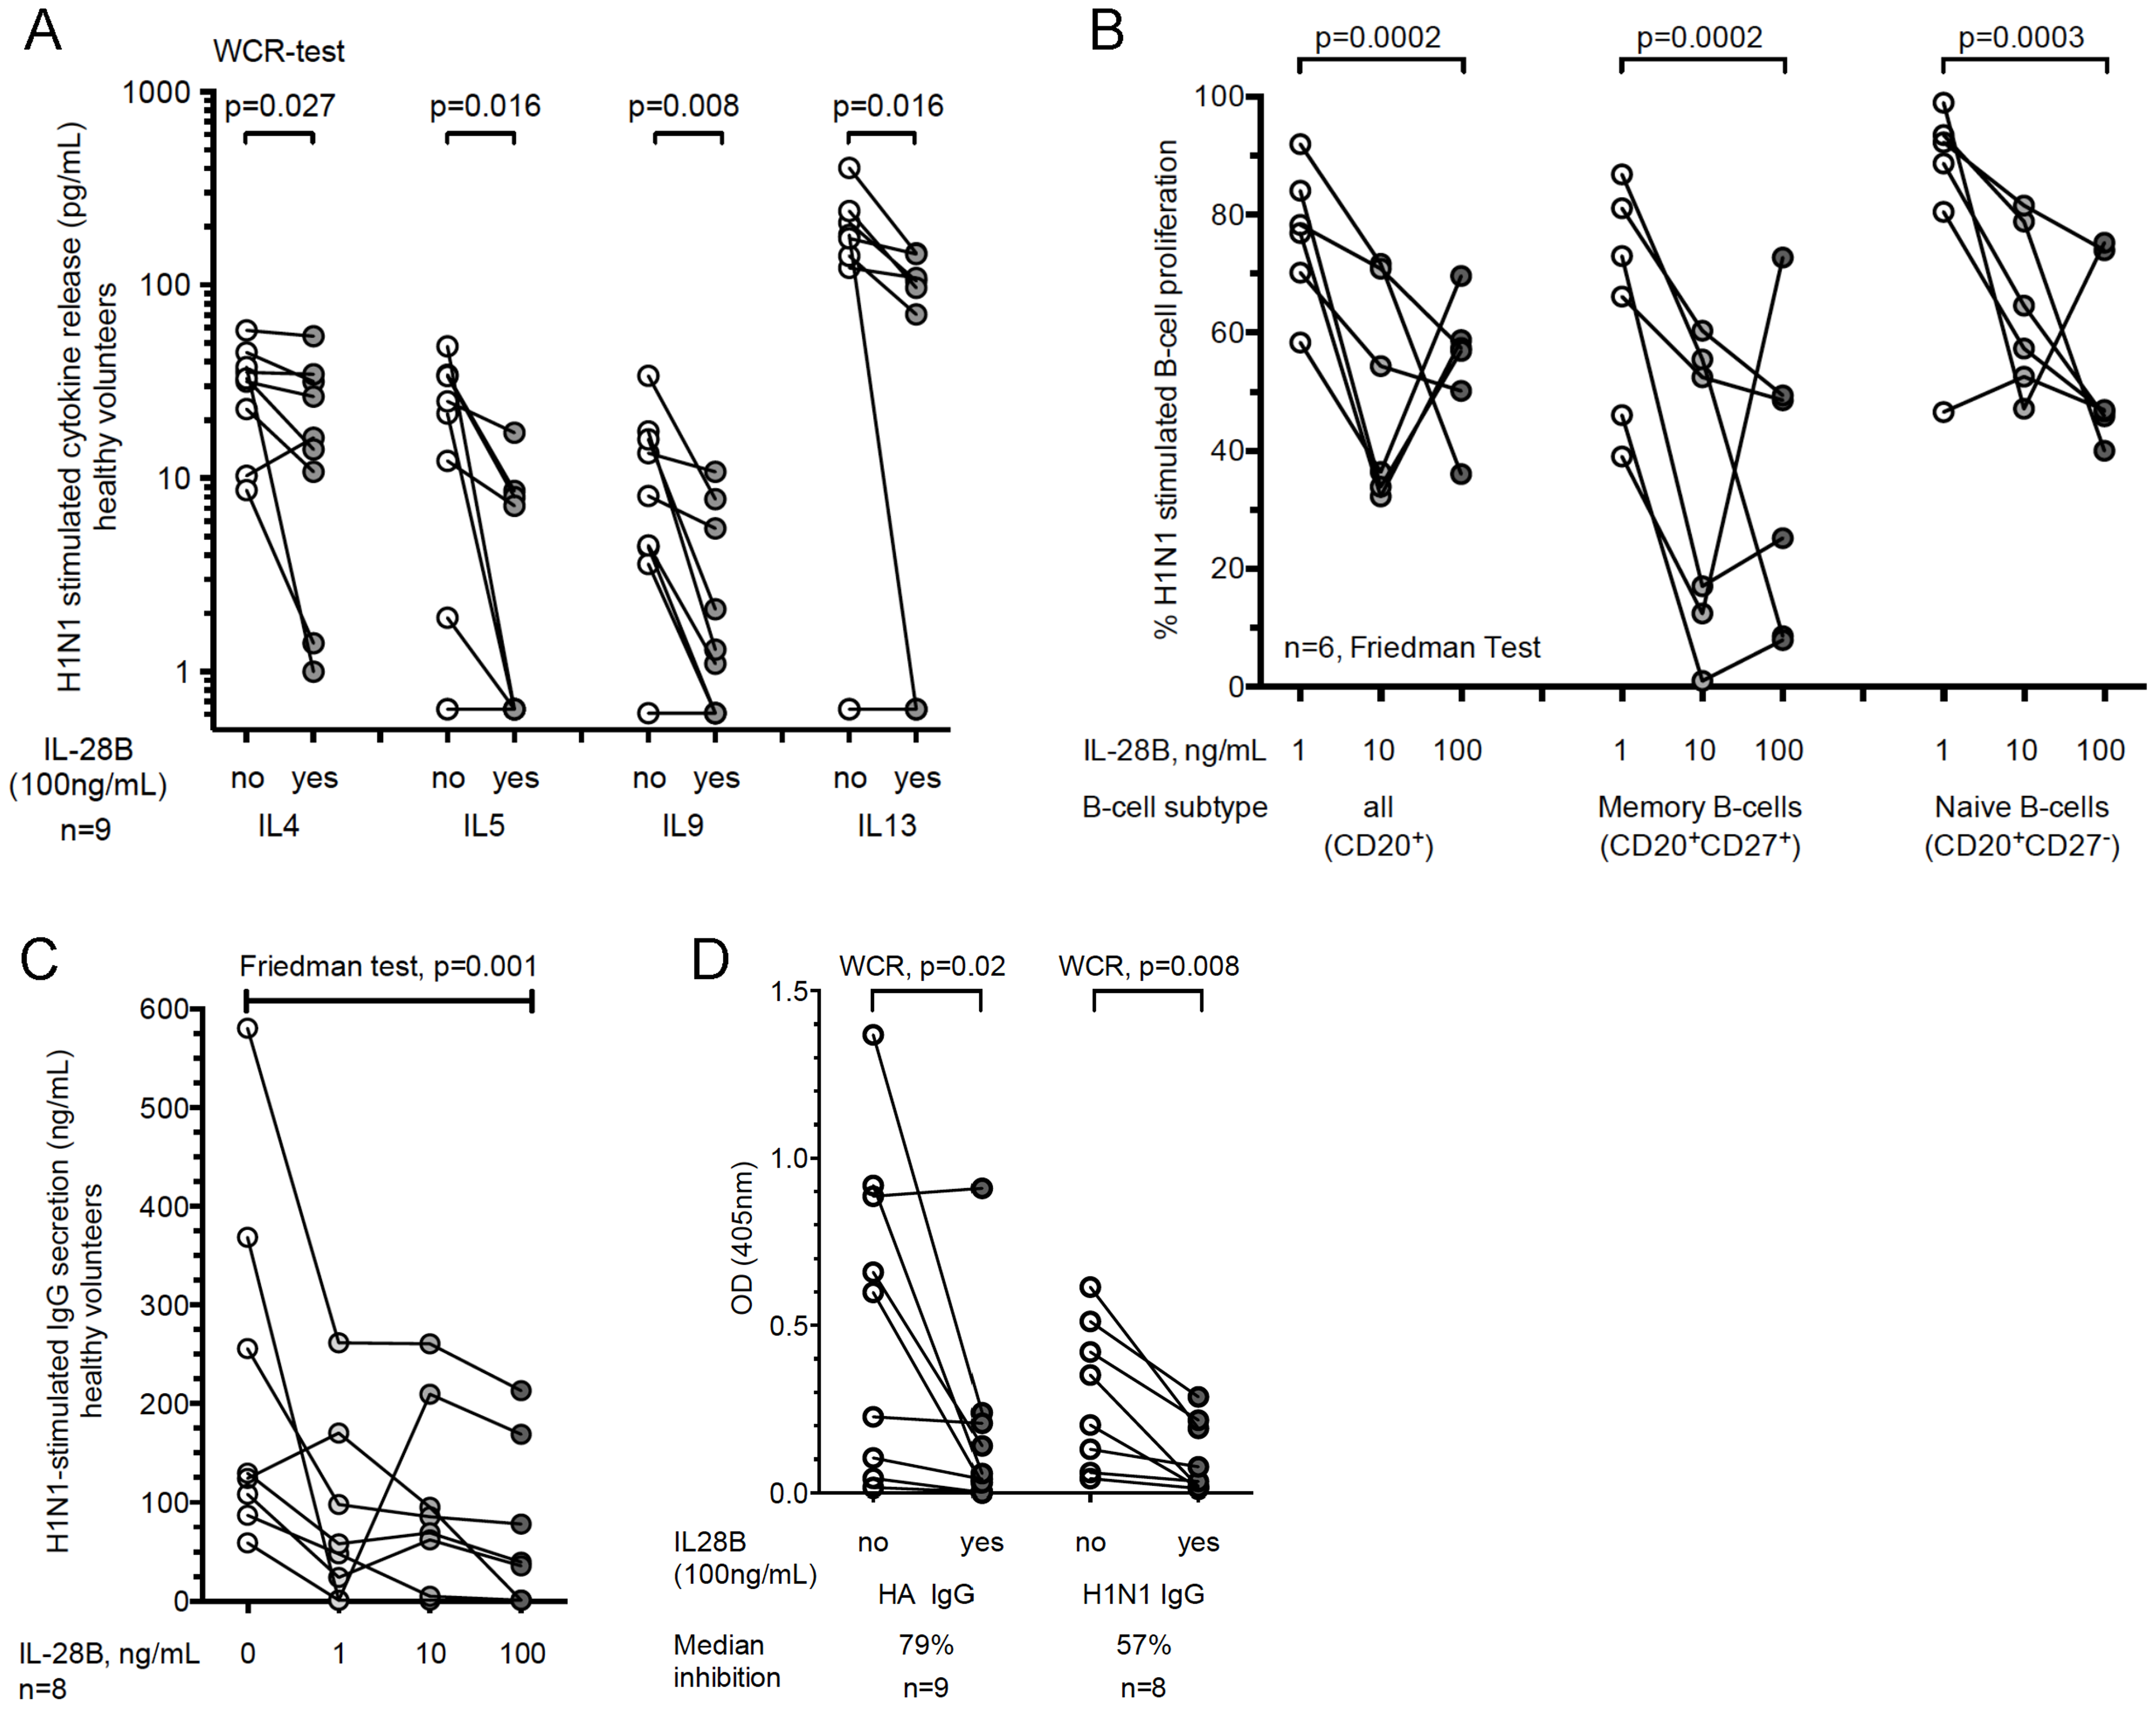 Recombinant IL-28B inhibits Influenza H1N1-induced Th2 response and B cell activation and IgG production in healthy volunteers.